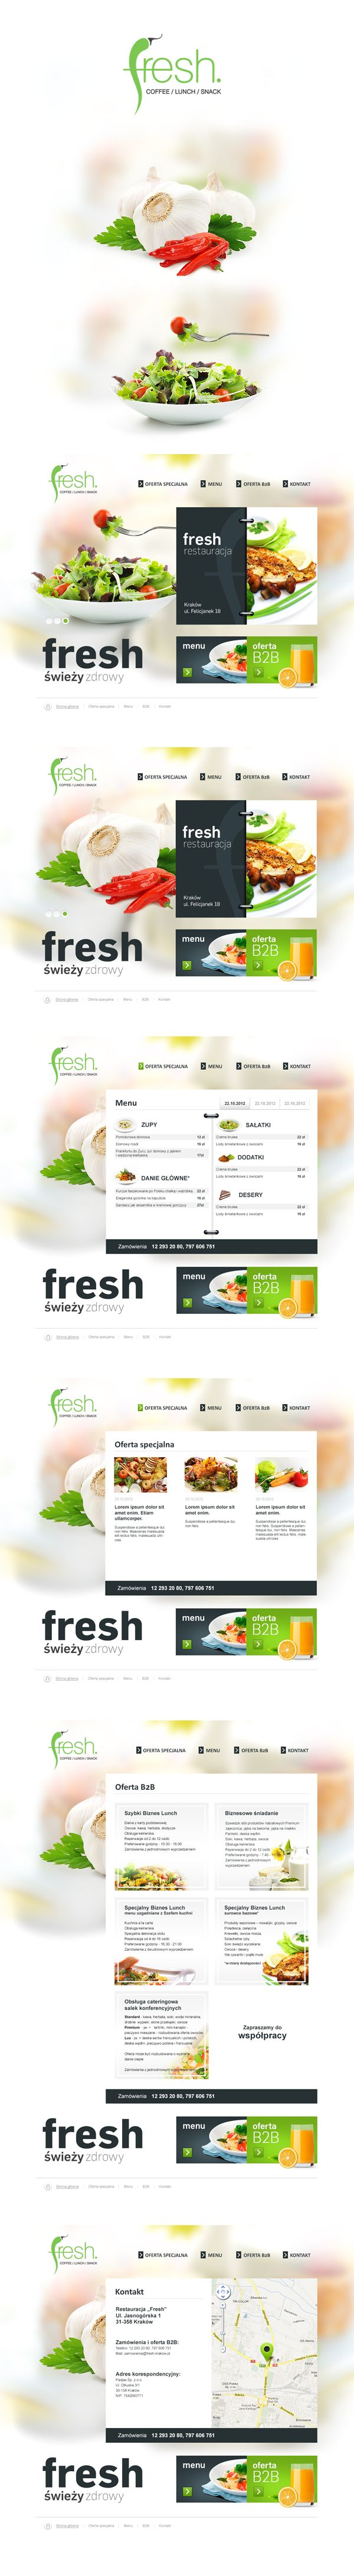 Fresh by Bartłomiej Gęboliś, via Behance | #webdesign #it #web #design #layout #userinterface #website #webdesign < repinned by www.BlickeDeeler.de | Take a look at www.WebsiteDesign-Hamburg.de